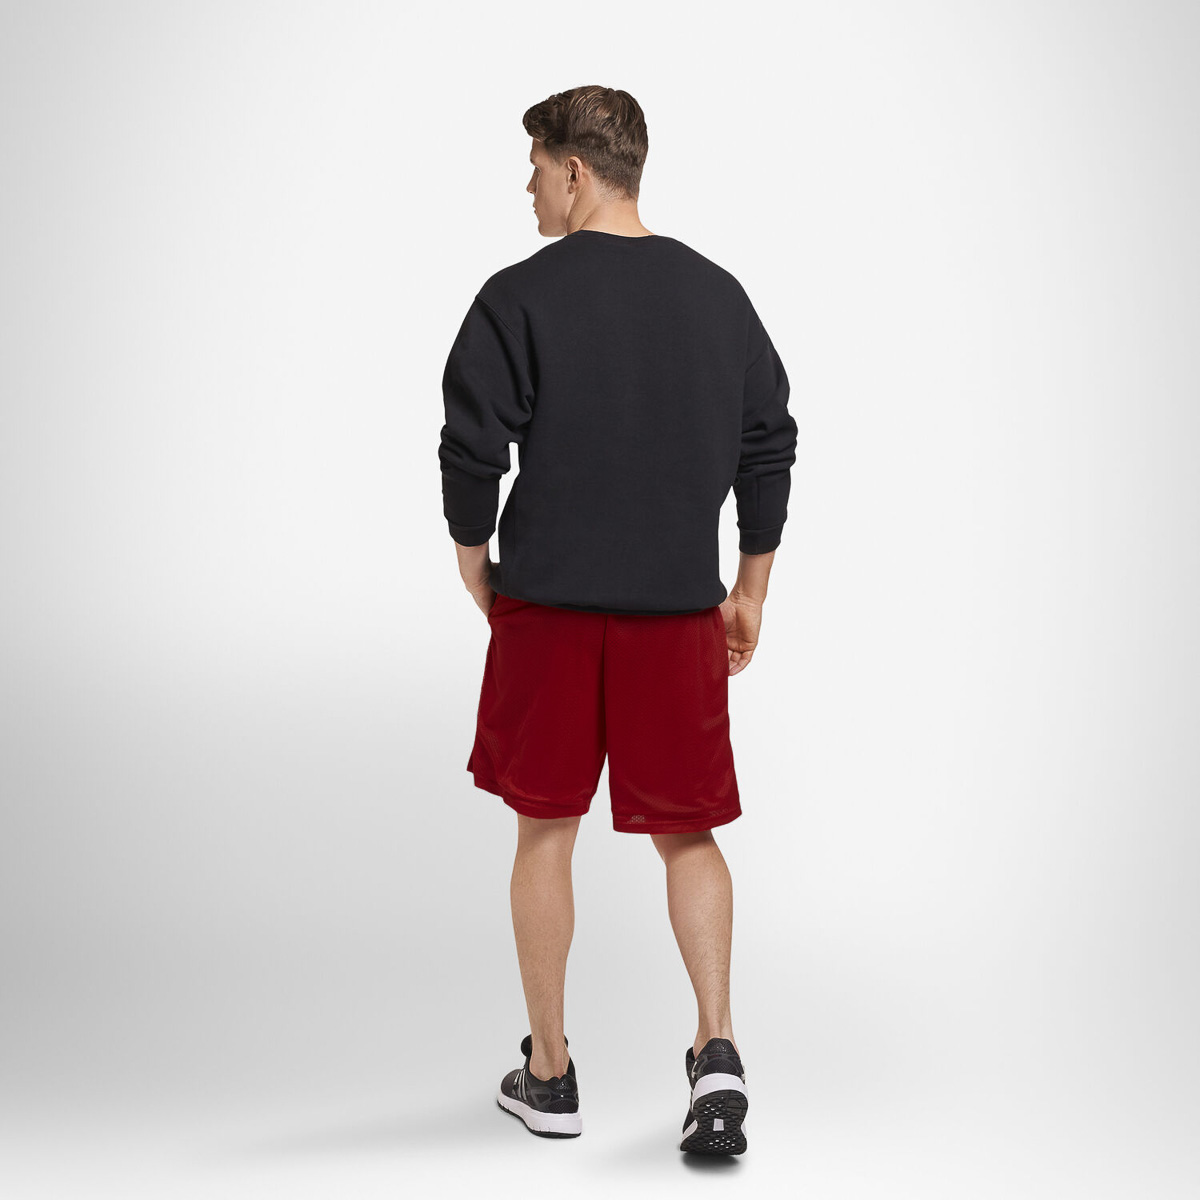 thumbnail 24 - Russell-Athletic-Mens-Shorts-With-Pockets-Mesh-Moisture-Wicking-Gym-Activewear